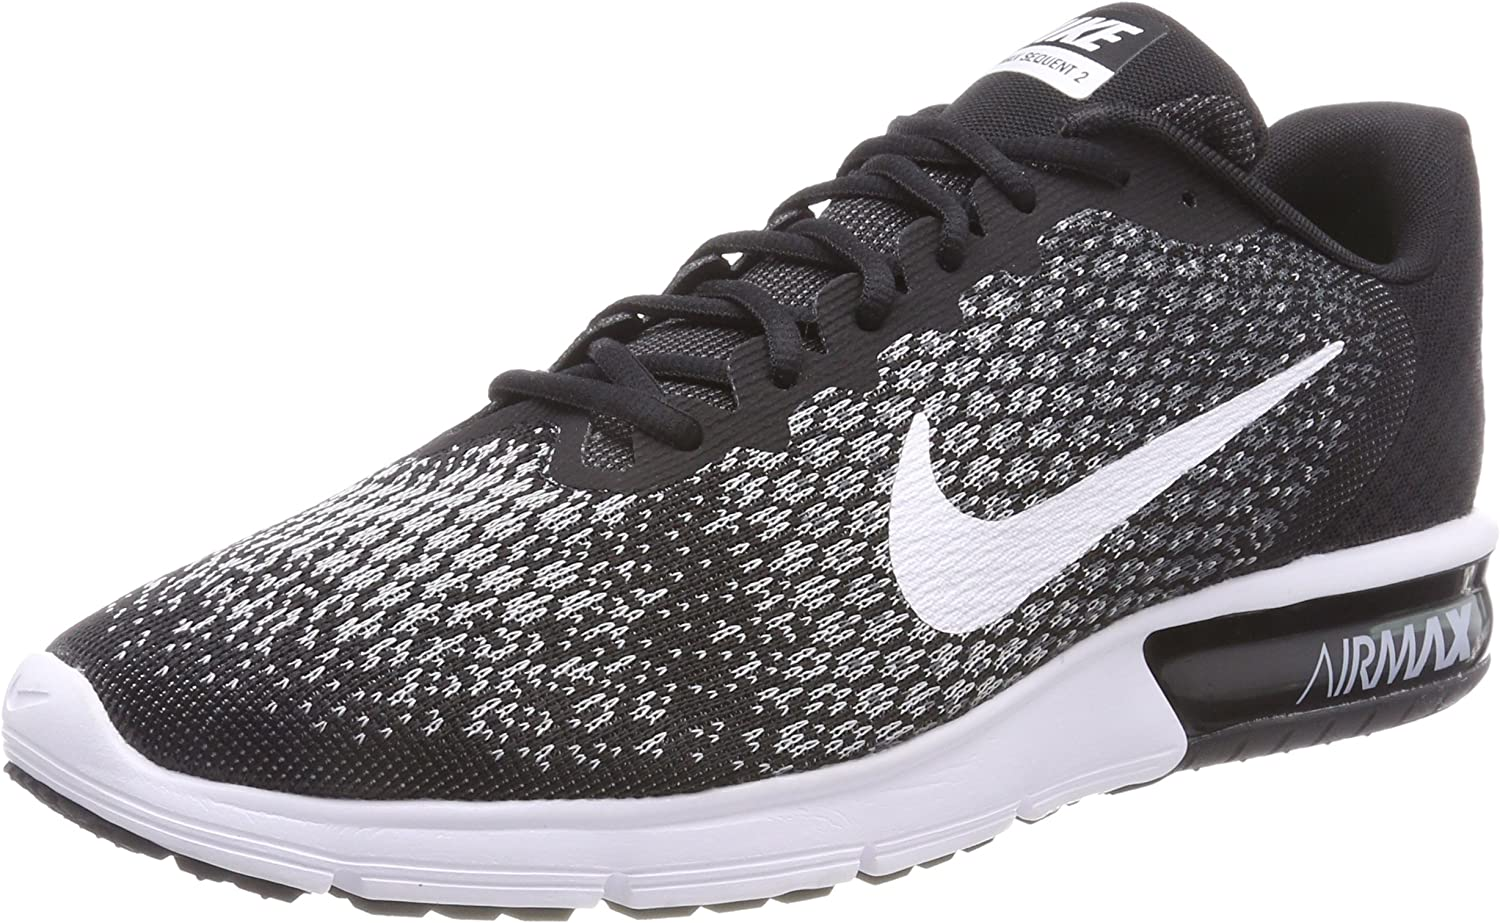 salario pasión amargo  Amazon.com: Nike Air Max Sequent 2 calzado de correr, para hombre: Shoes